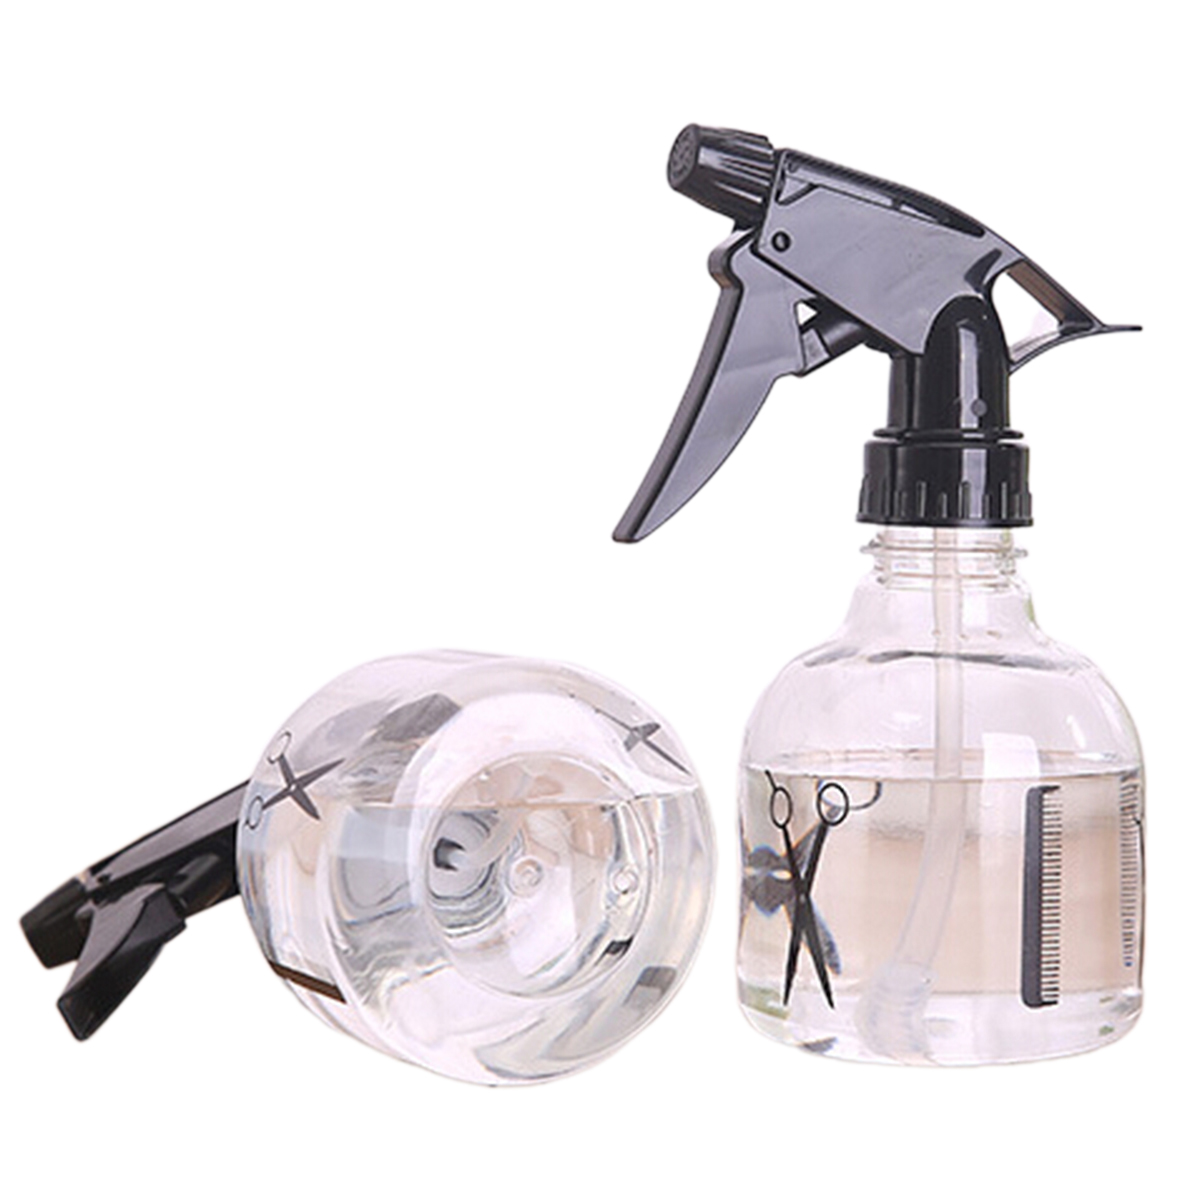 1pc 250ml Travel Empty Spray Bottle Transparent Plastic Perfume Atomizer Sprayers For Hairstyling Garden Moisturizing